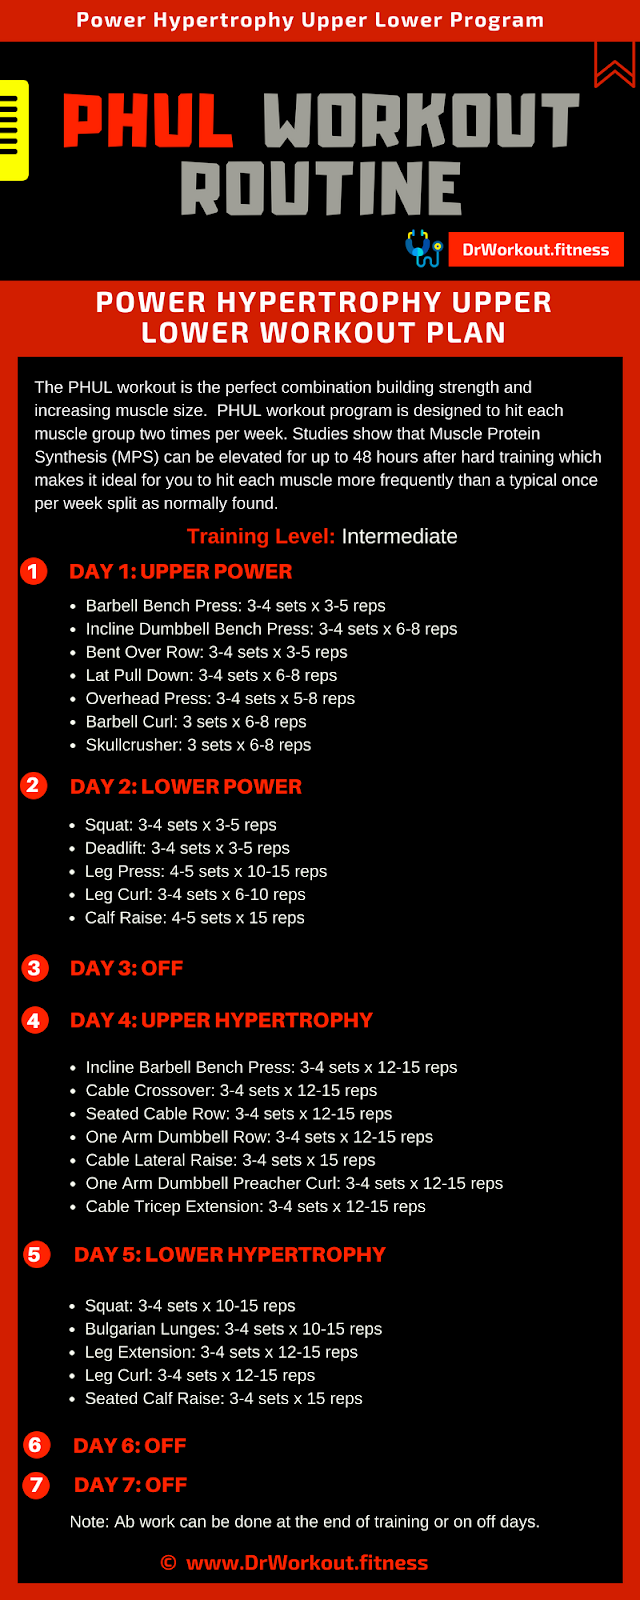 Power Hypertrophy Upper Lower (PHUL) Workout Routine | Dr Workout